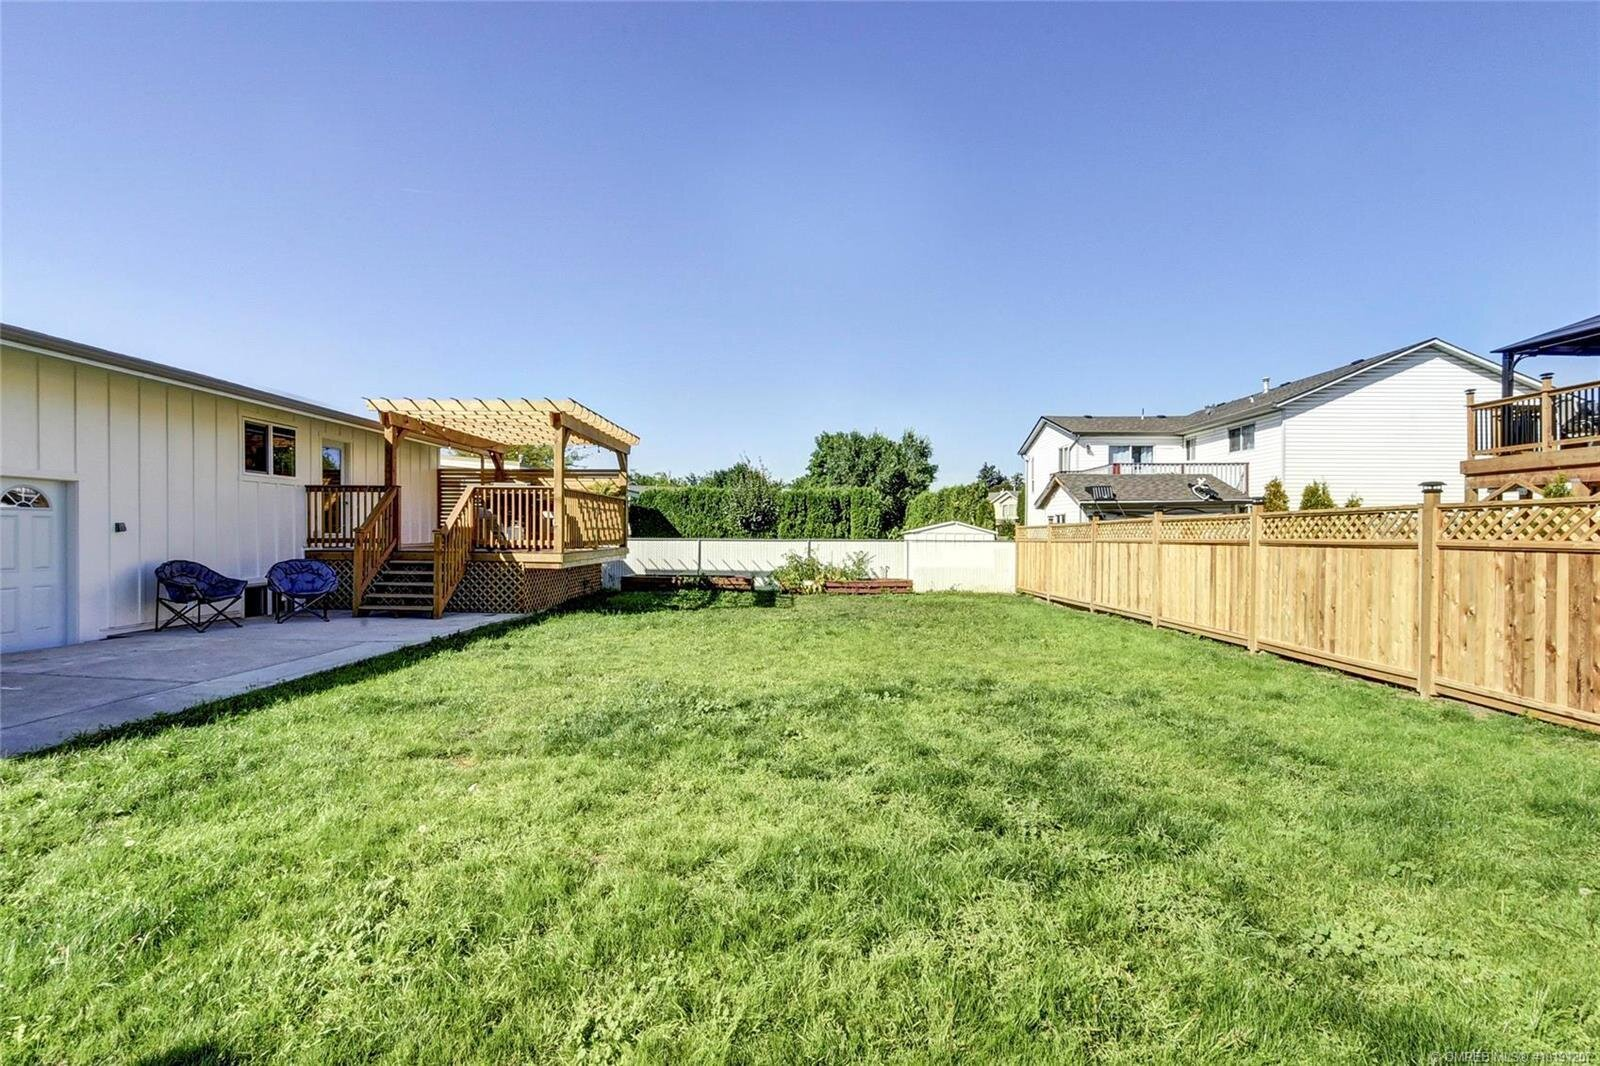 505-hollywood-road-south-farmhouse-inspired-family-home-kelowna-rutland-exterior-backyard.jpg